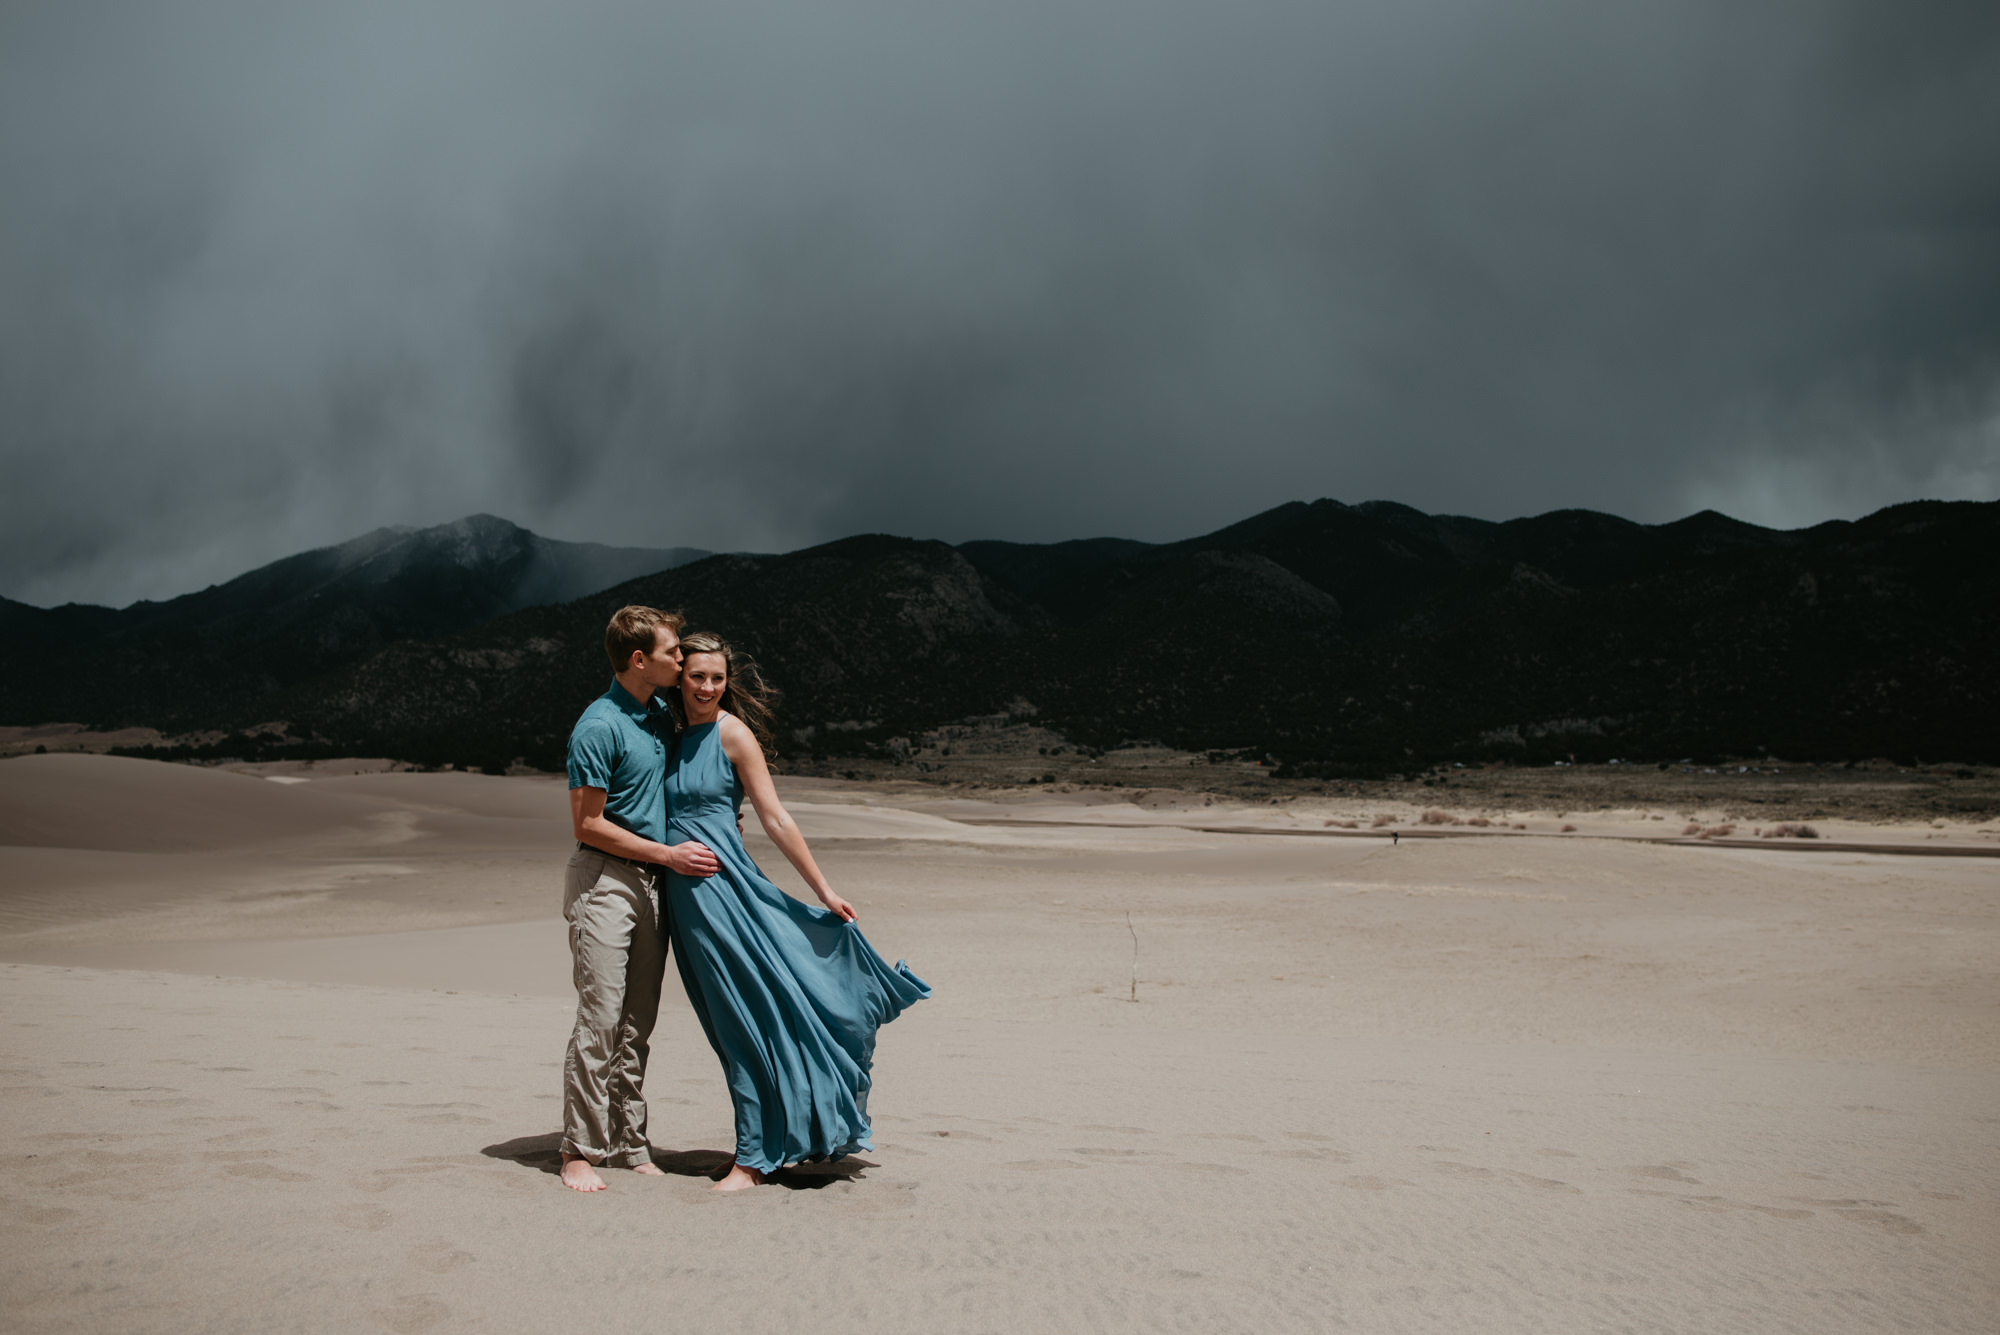 Brittany and Eric's Engagement Photoshoot at Great Sand Dunes National Park